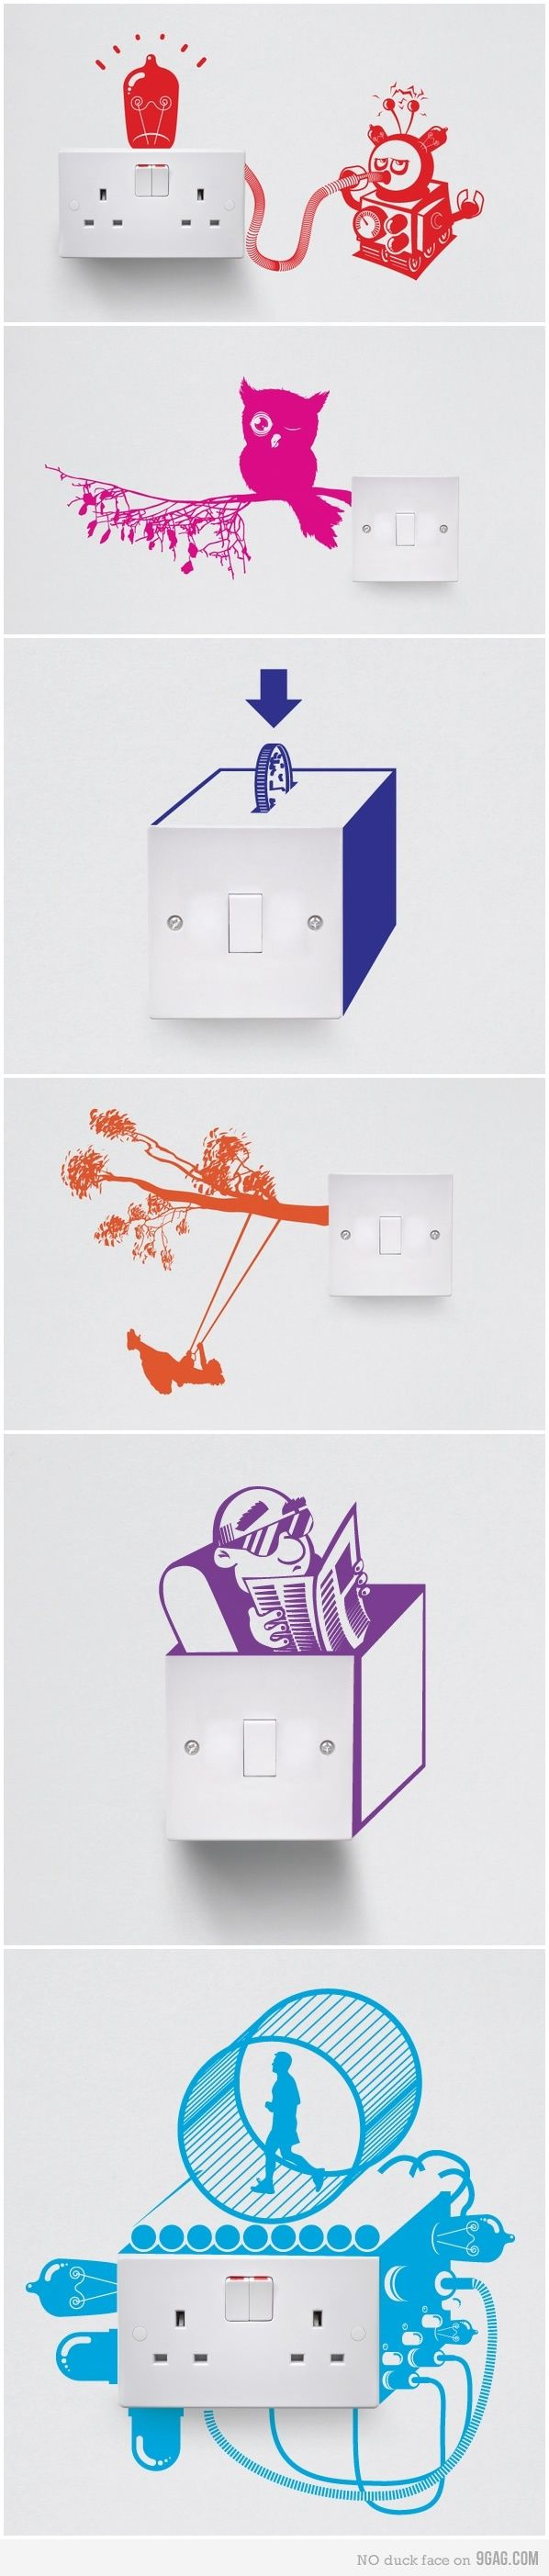 I could see myself doodling on an electric outlet like this. I don't think I am the best doodler so I probably won't but would if I was about to repaint the room.